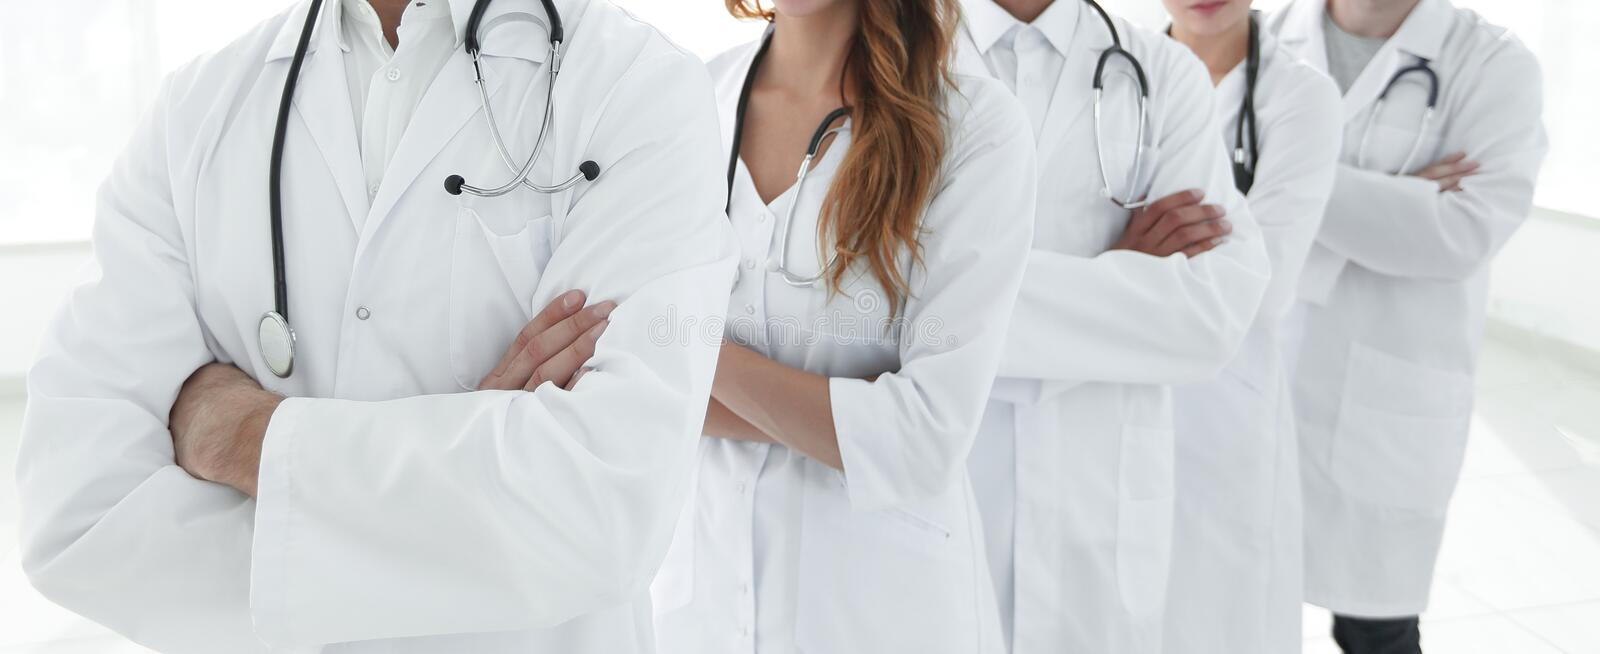 Closeup .group of medical workers stock photography